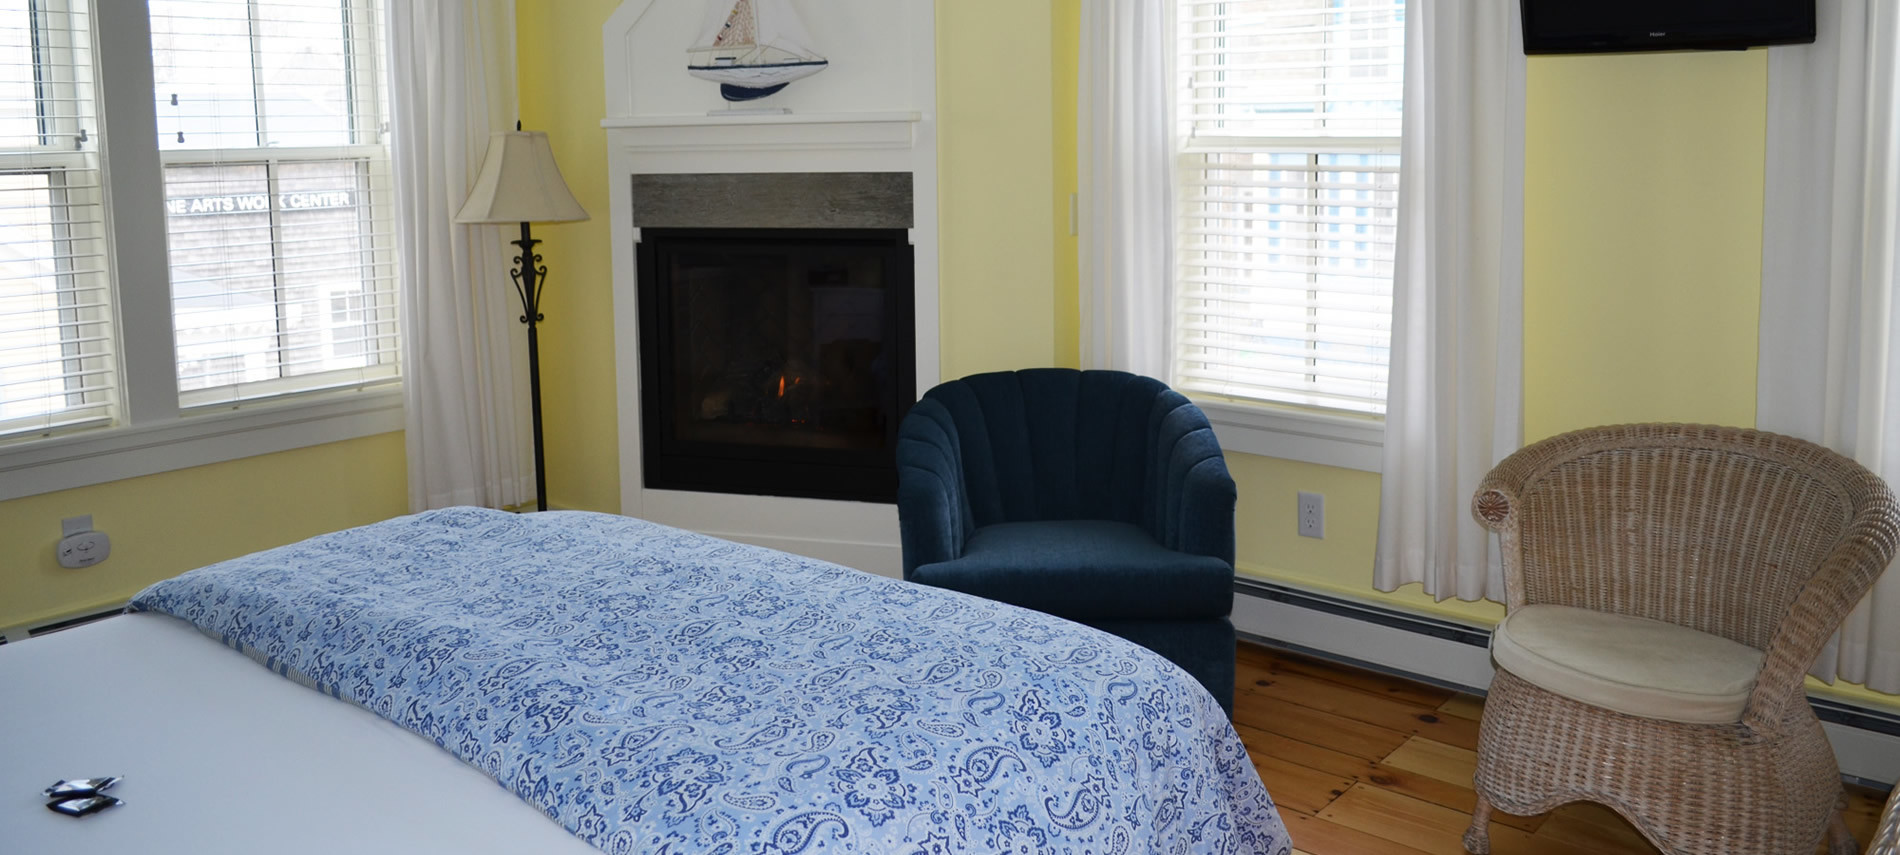 Room 3 Second floor, queen bed with a white bedspread, with blue/white paisley comforter at the bottom of bed, One navy blue chair and one tan wicker chair, Fireplace lite. Yellow walls and white curtains